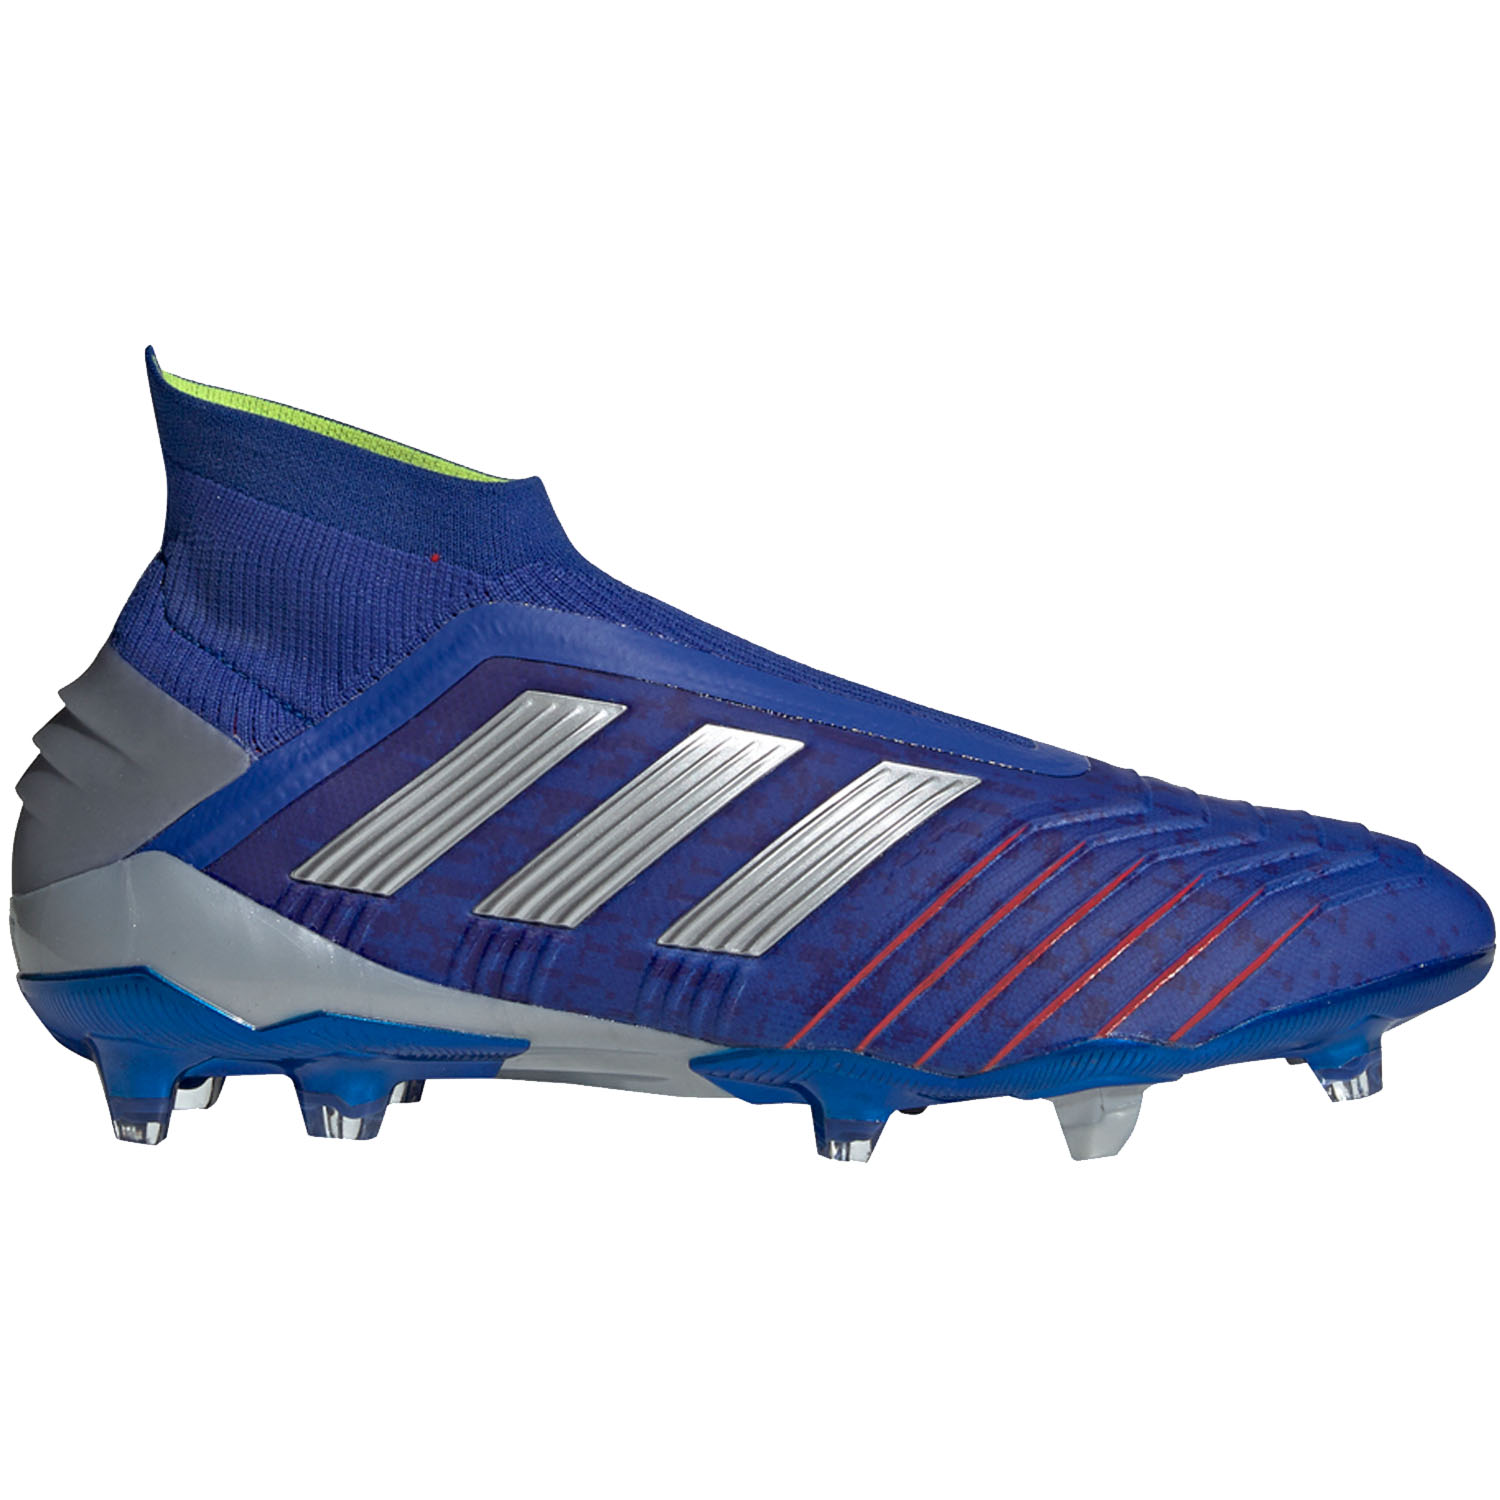 new product cce14 57eac Adidas Predator 19+ FG